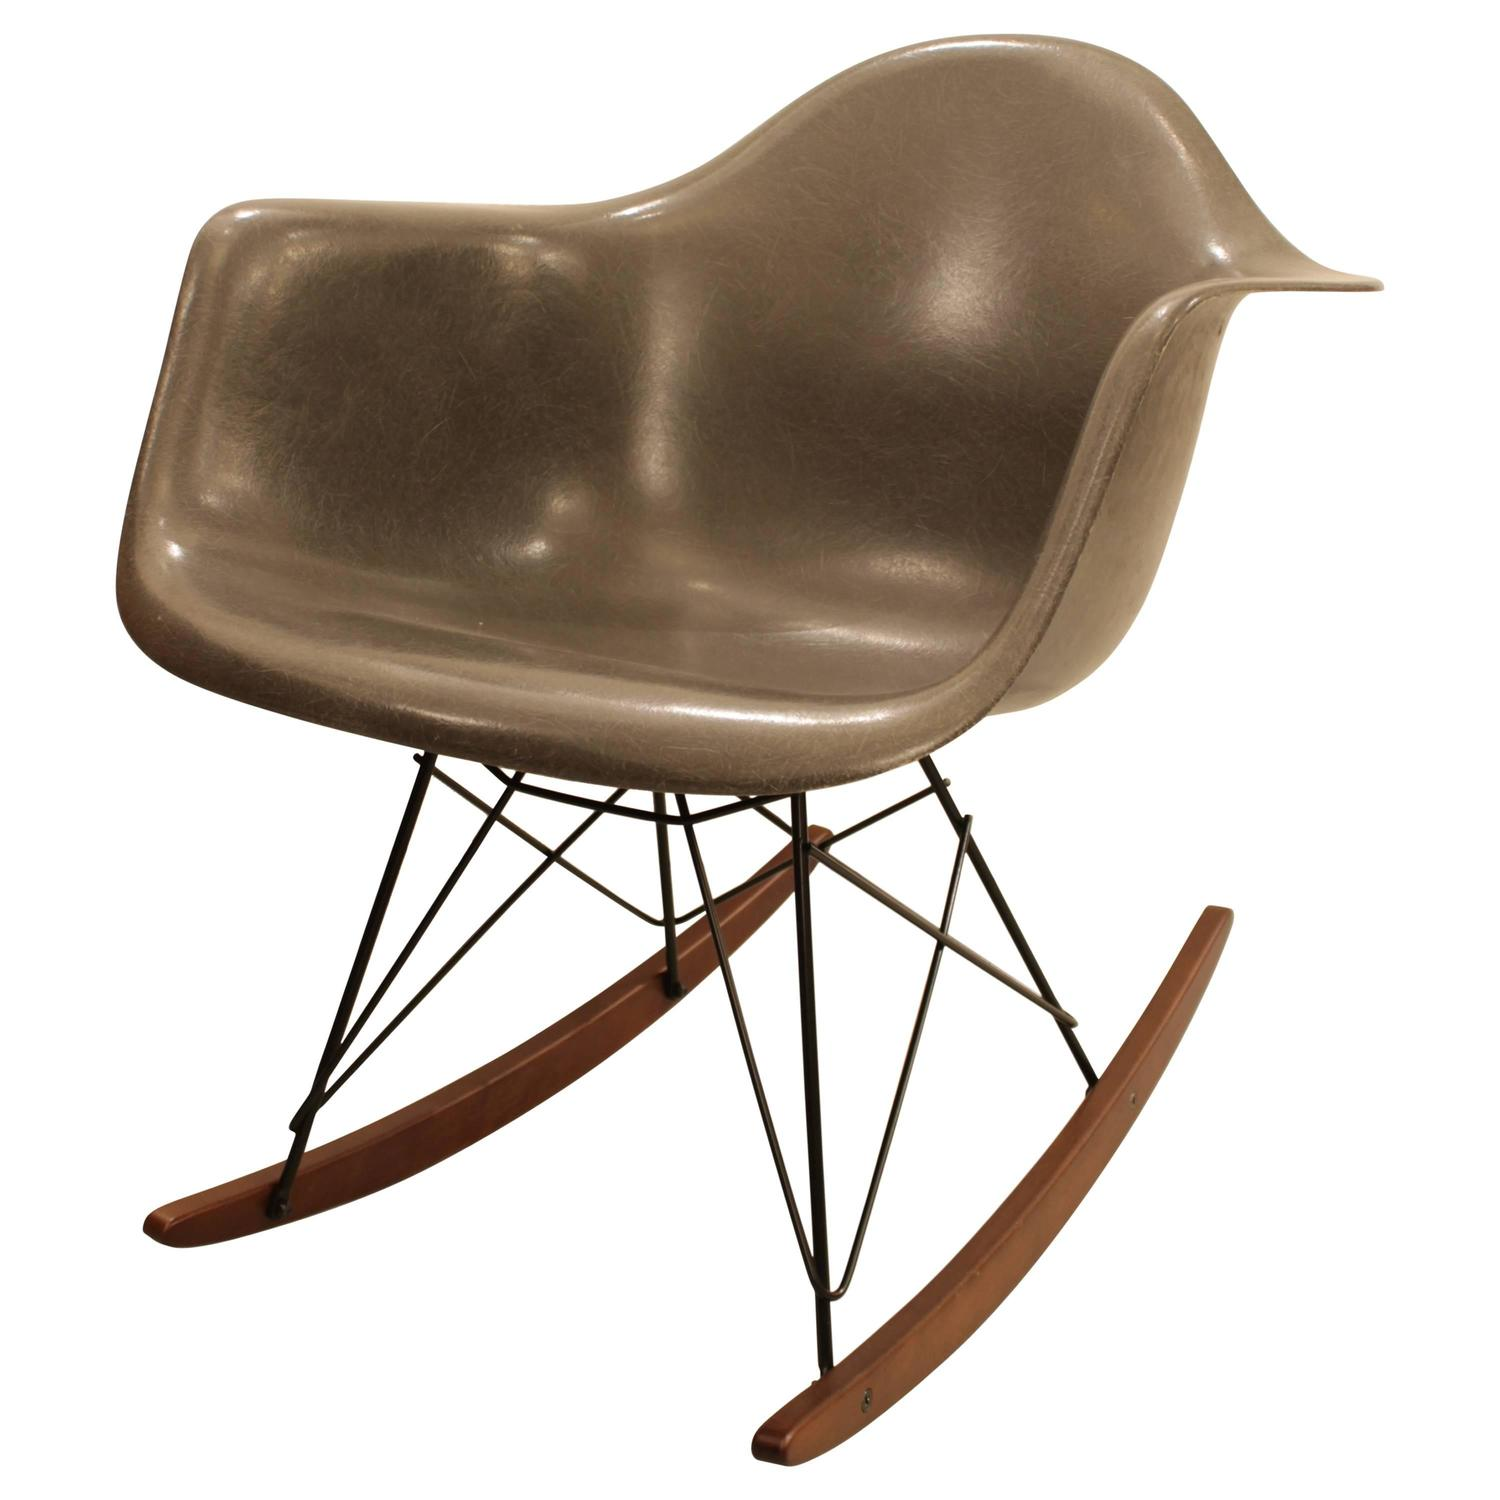 Charles eames rocking chair elephant grey at 1stdibs - Eams rocking chair ...